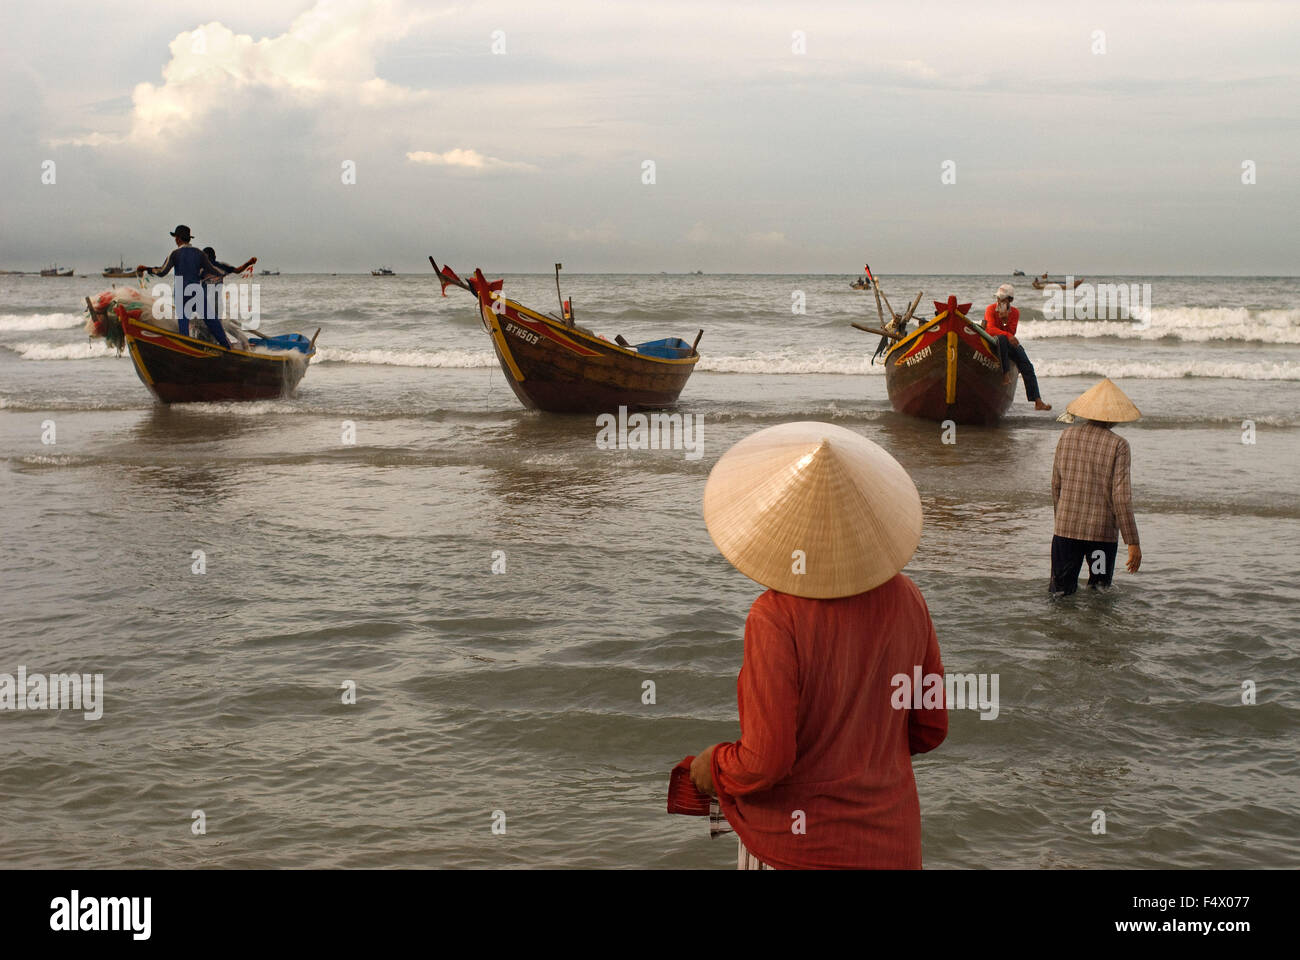 Lady awaiting the landing of the catch, Mui Ne fishing village, Bình Thuận Province, Vietnam Stock Photo